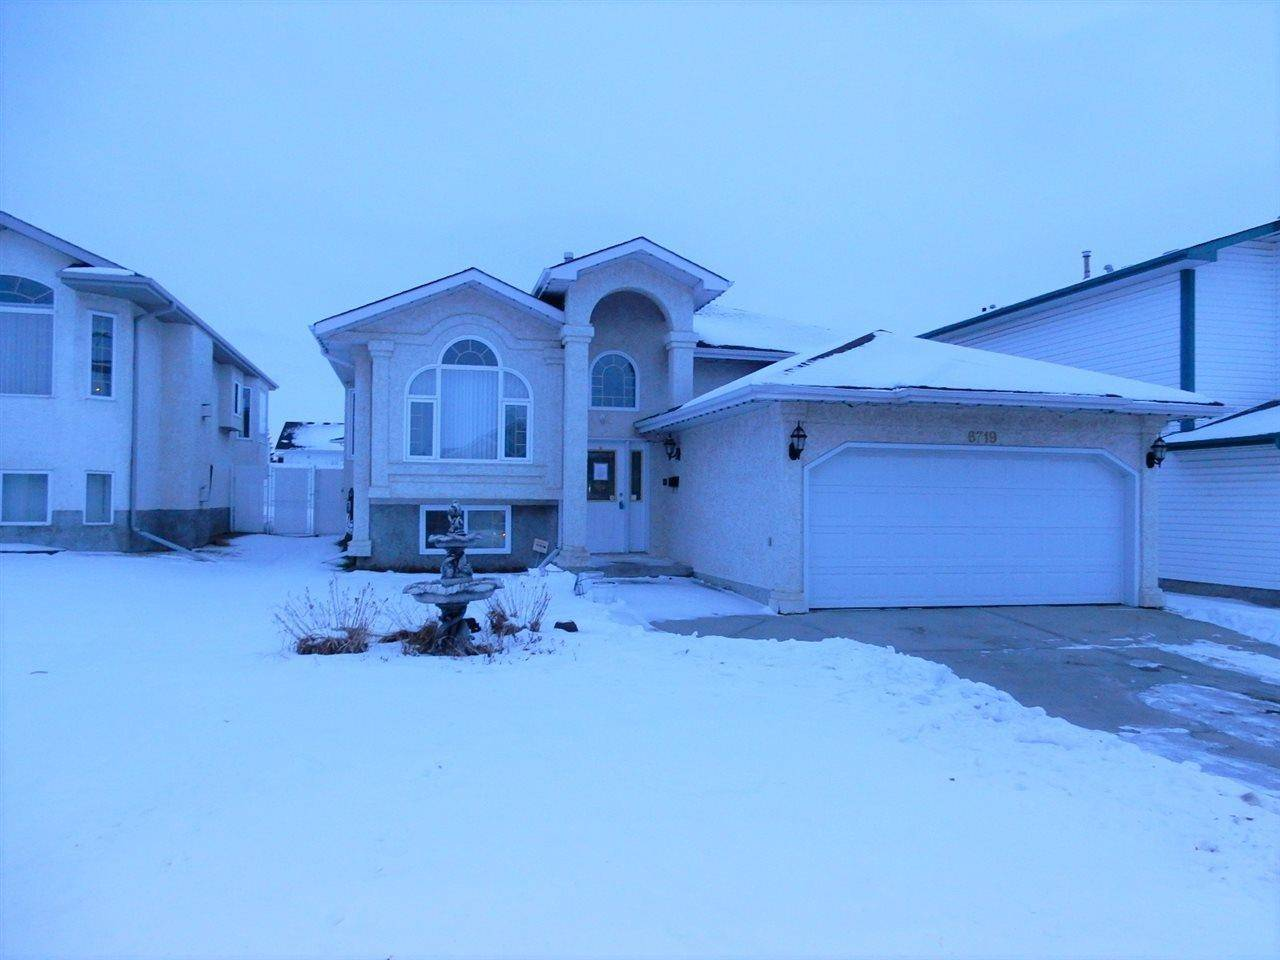 House for sale at 6719 162 Ave Nw Edmonton Alberta - MLS: E4187467